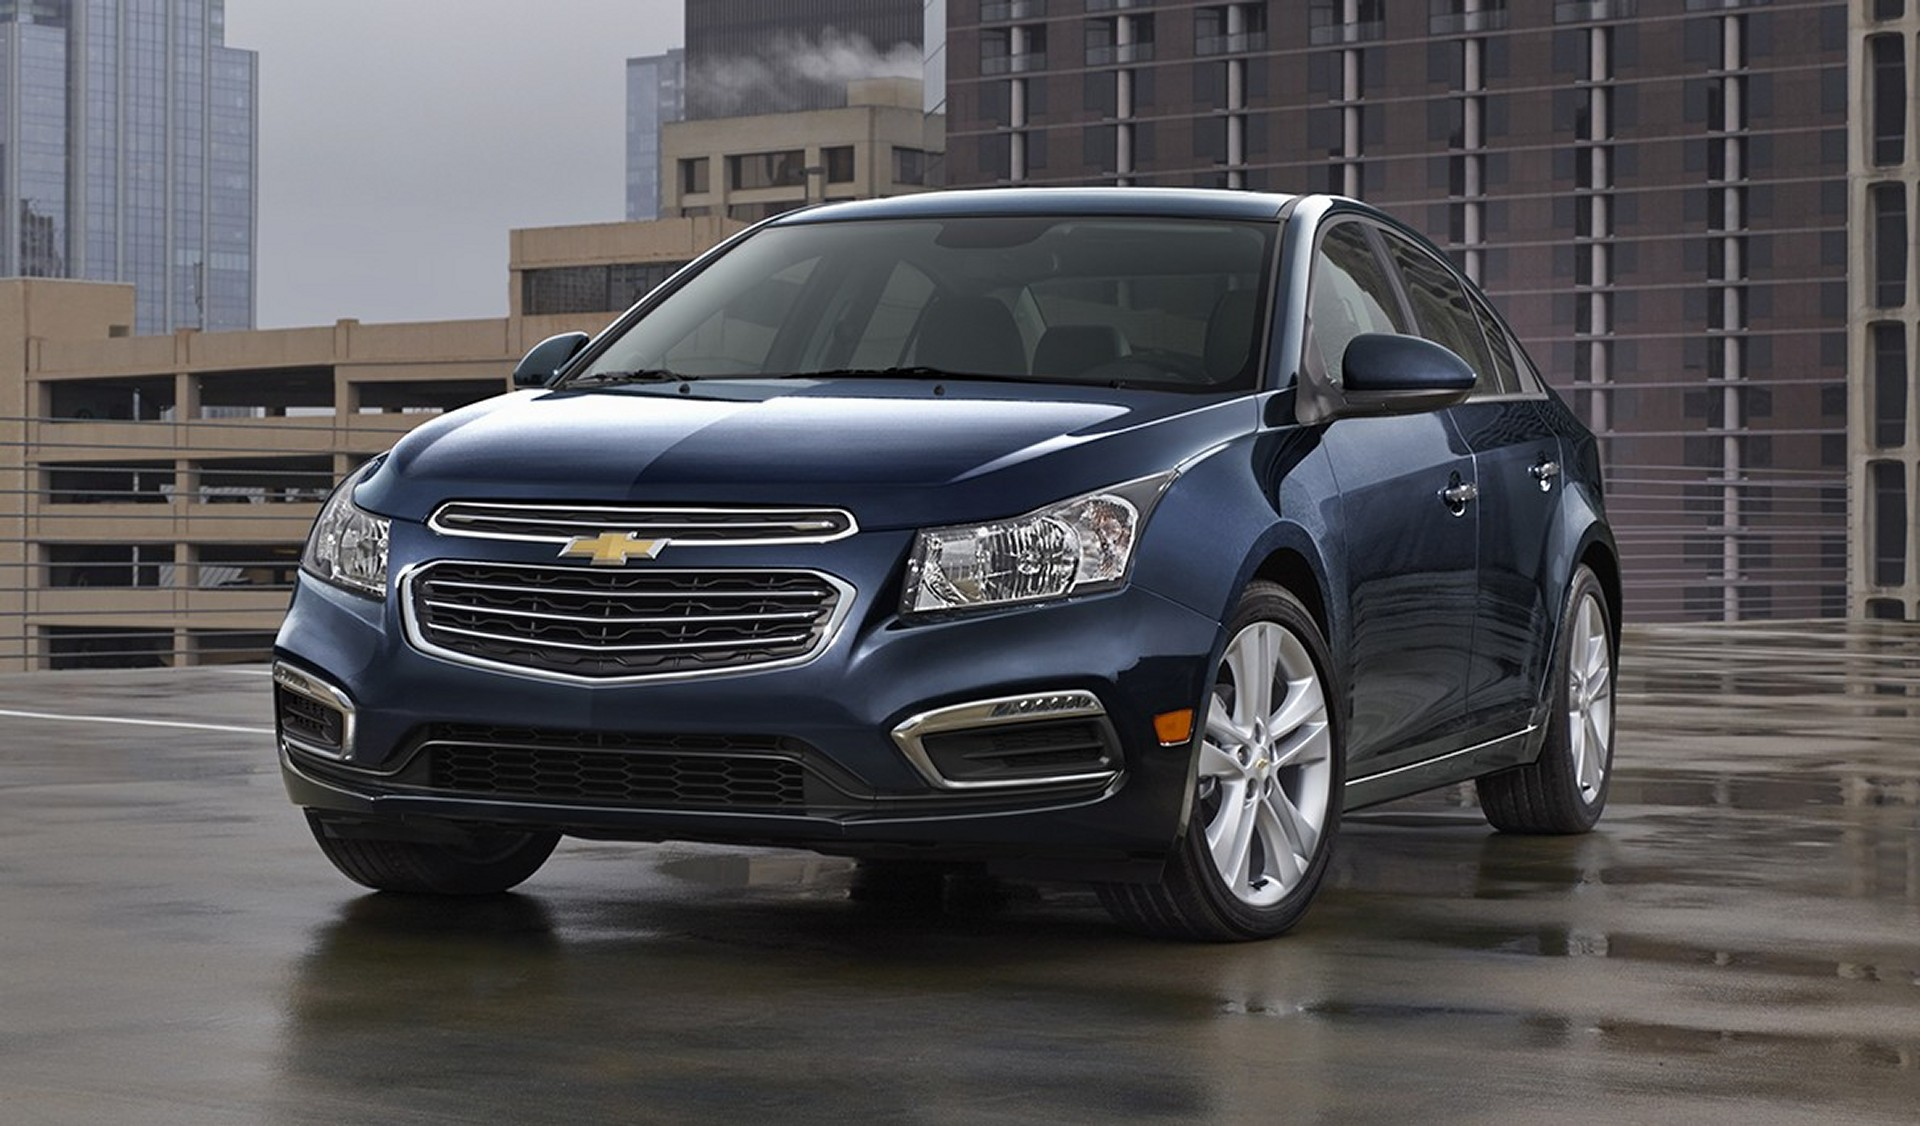 2015 Chevrolet Cruze (Chevy) Review, Ratings, Specs, Prices, and ...